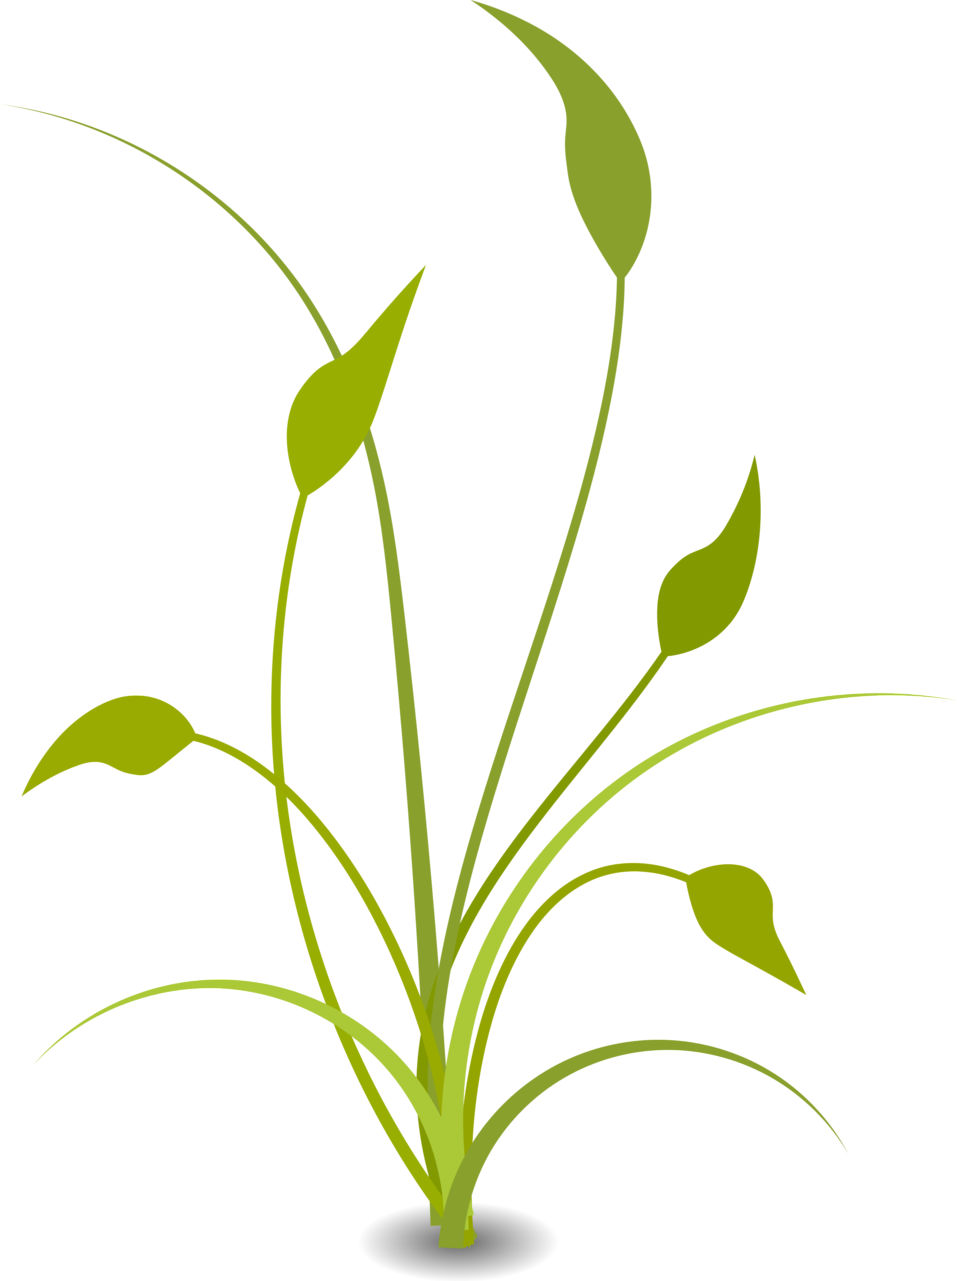 Green plant clipart.